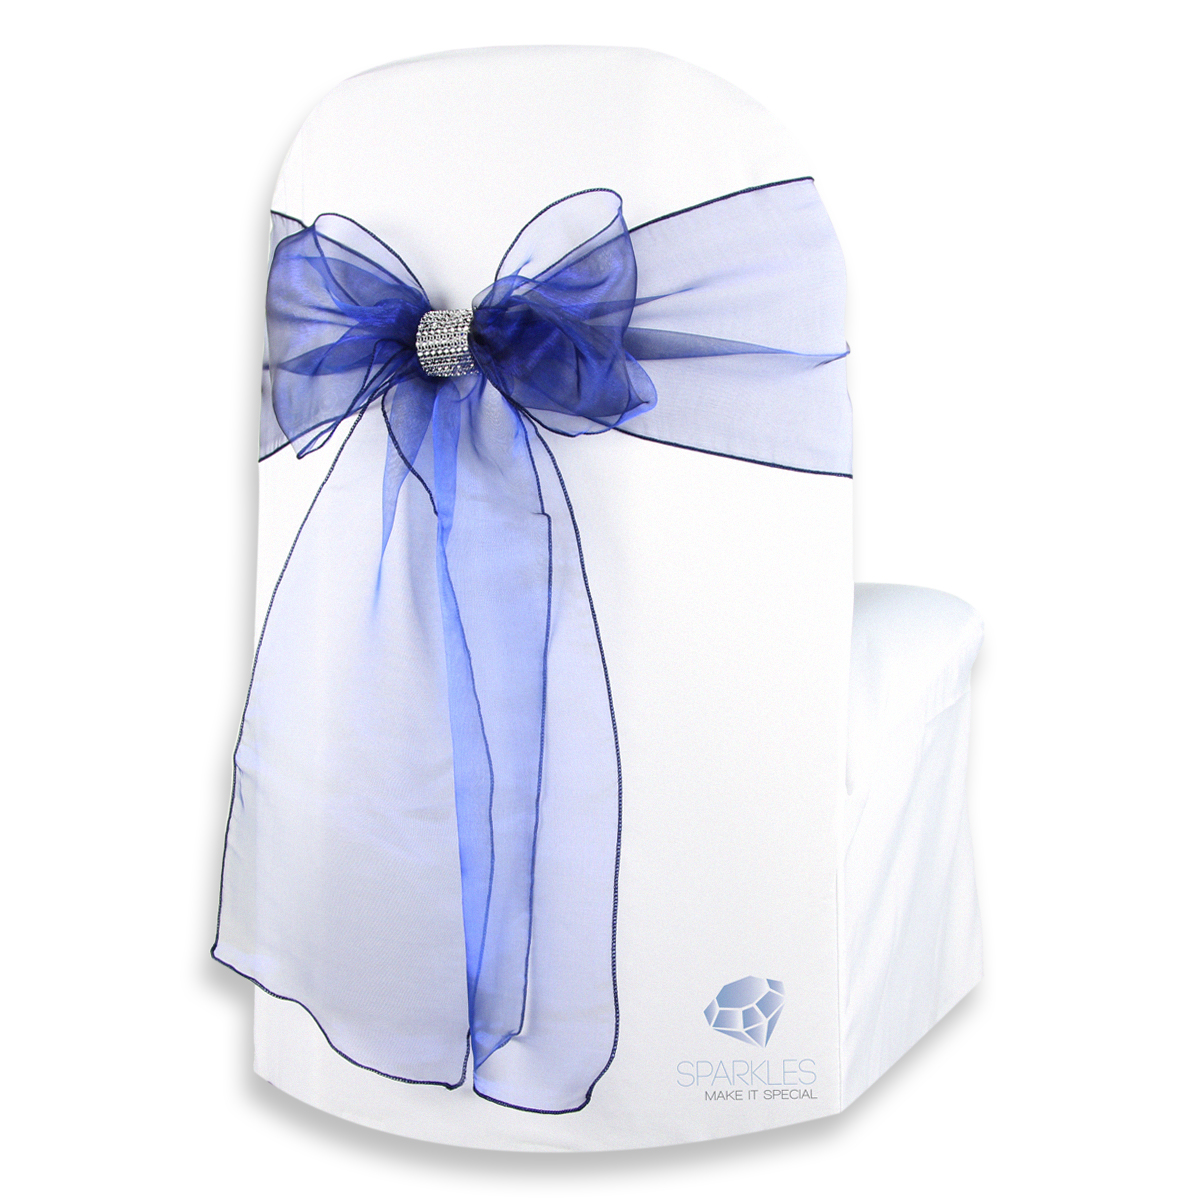 chair covers and bows ebay blue ticking 50 pcs organza cover bow sash 108 quotx8 quot wedding party